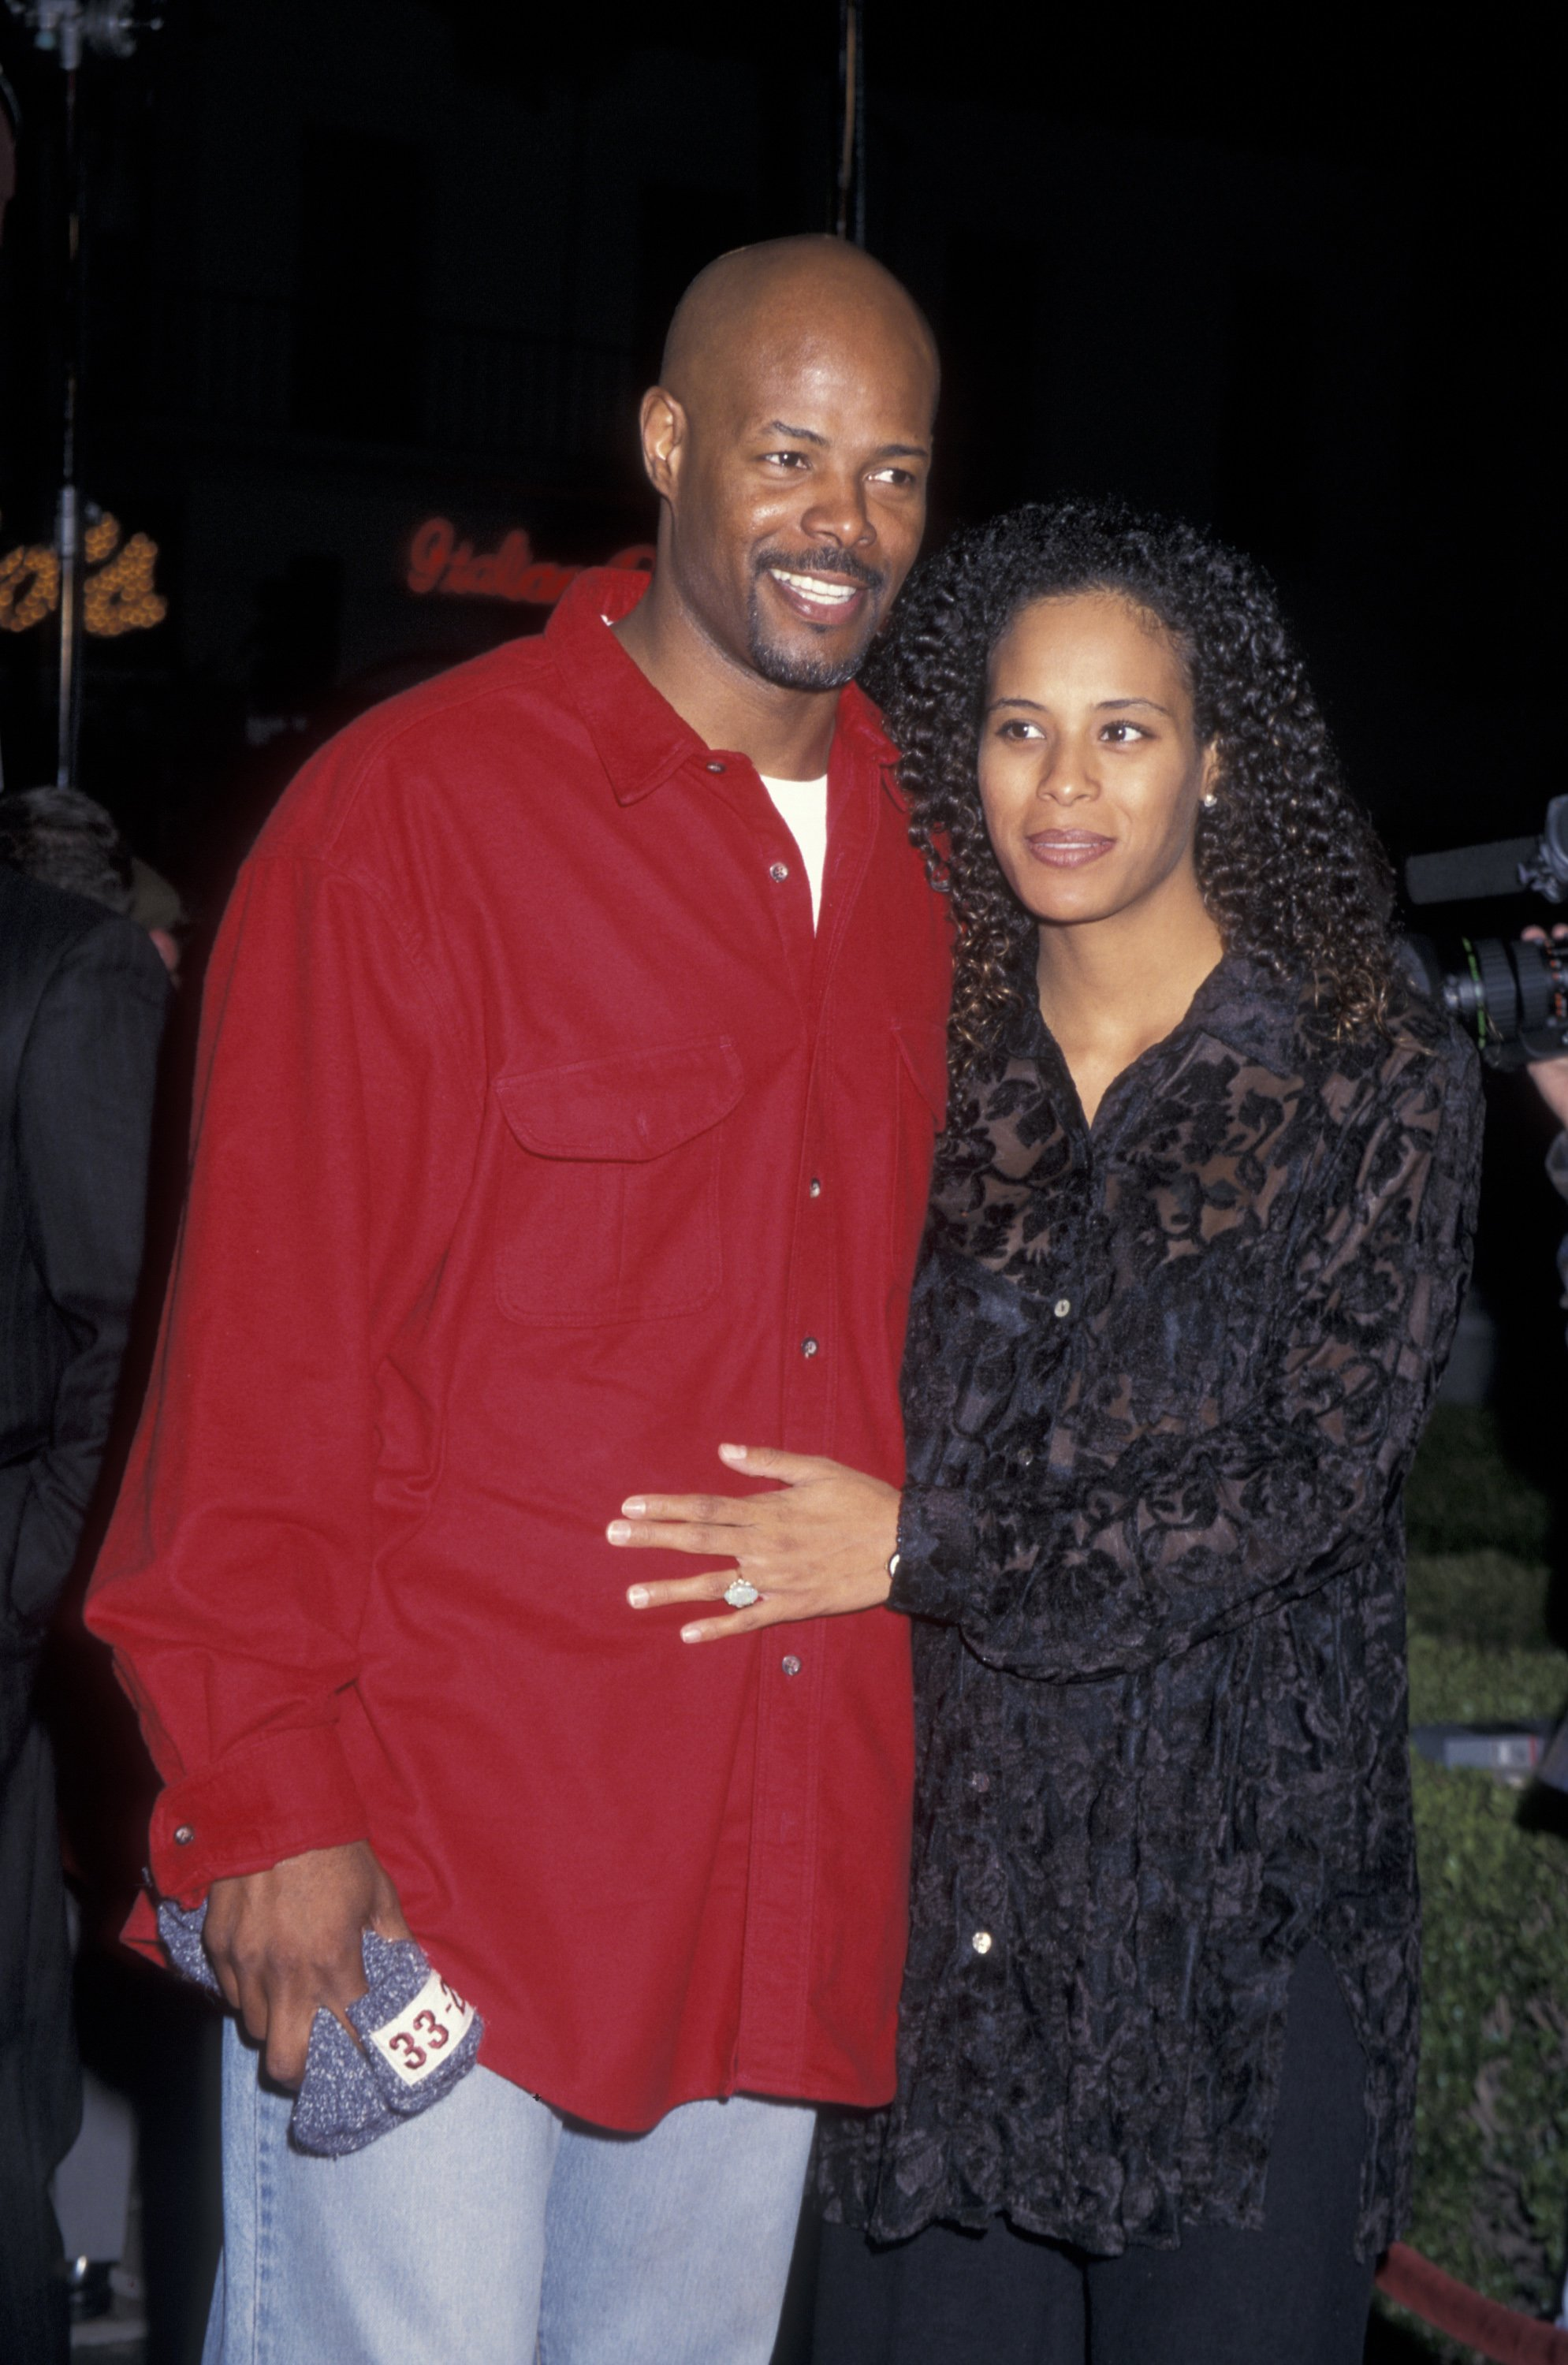 Keenen and Daphne Wayans attending an event together | Source: Getty Images